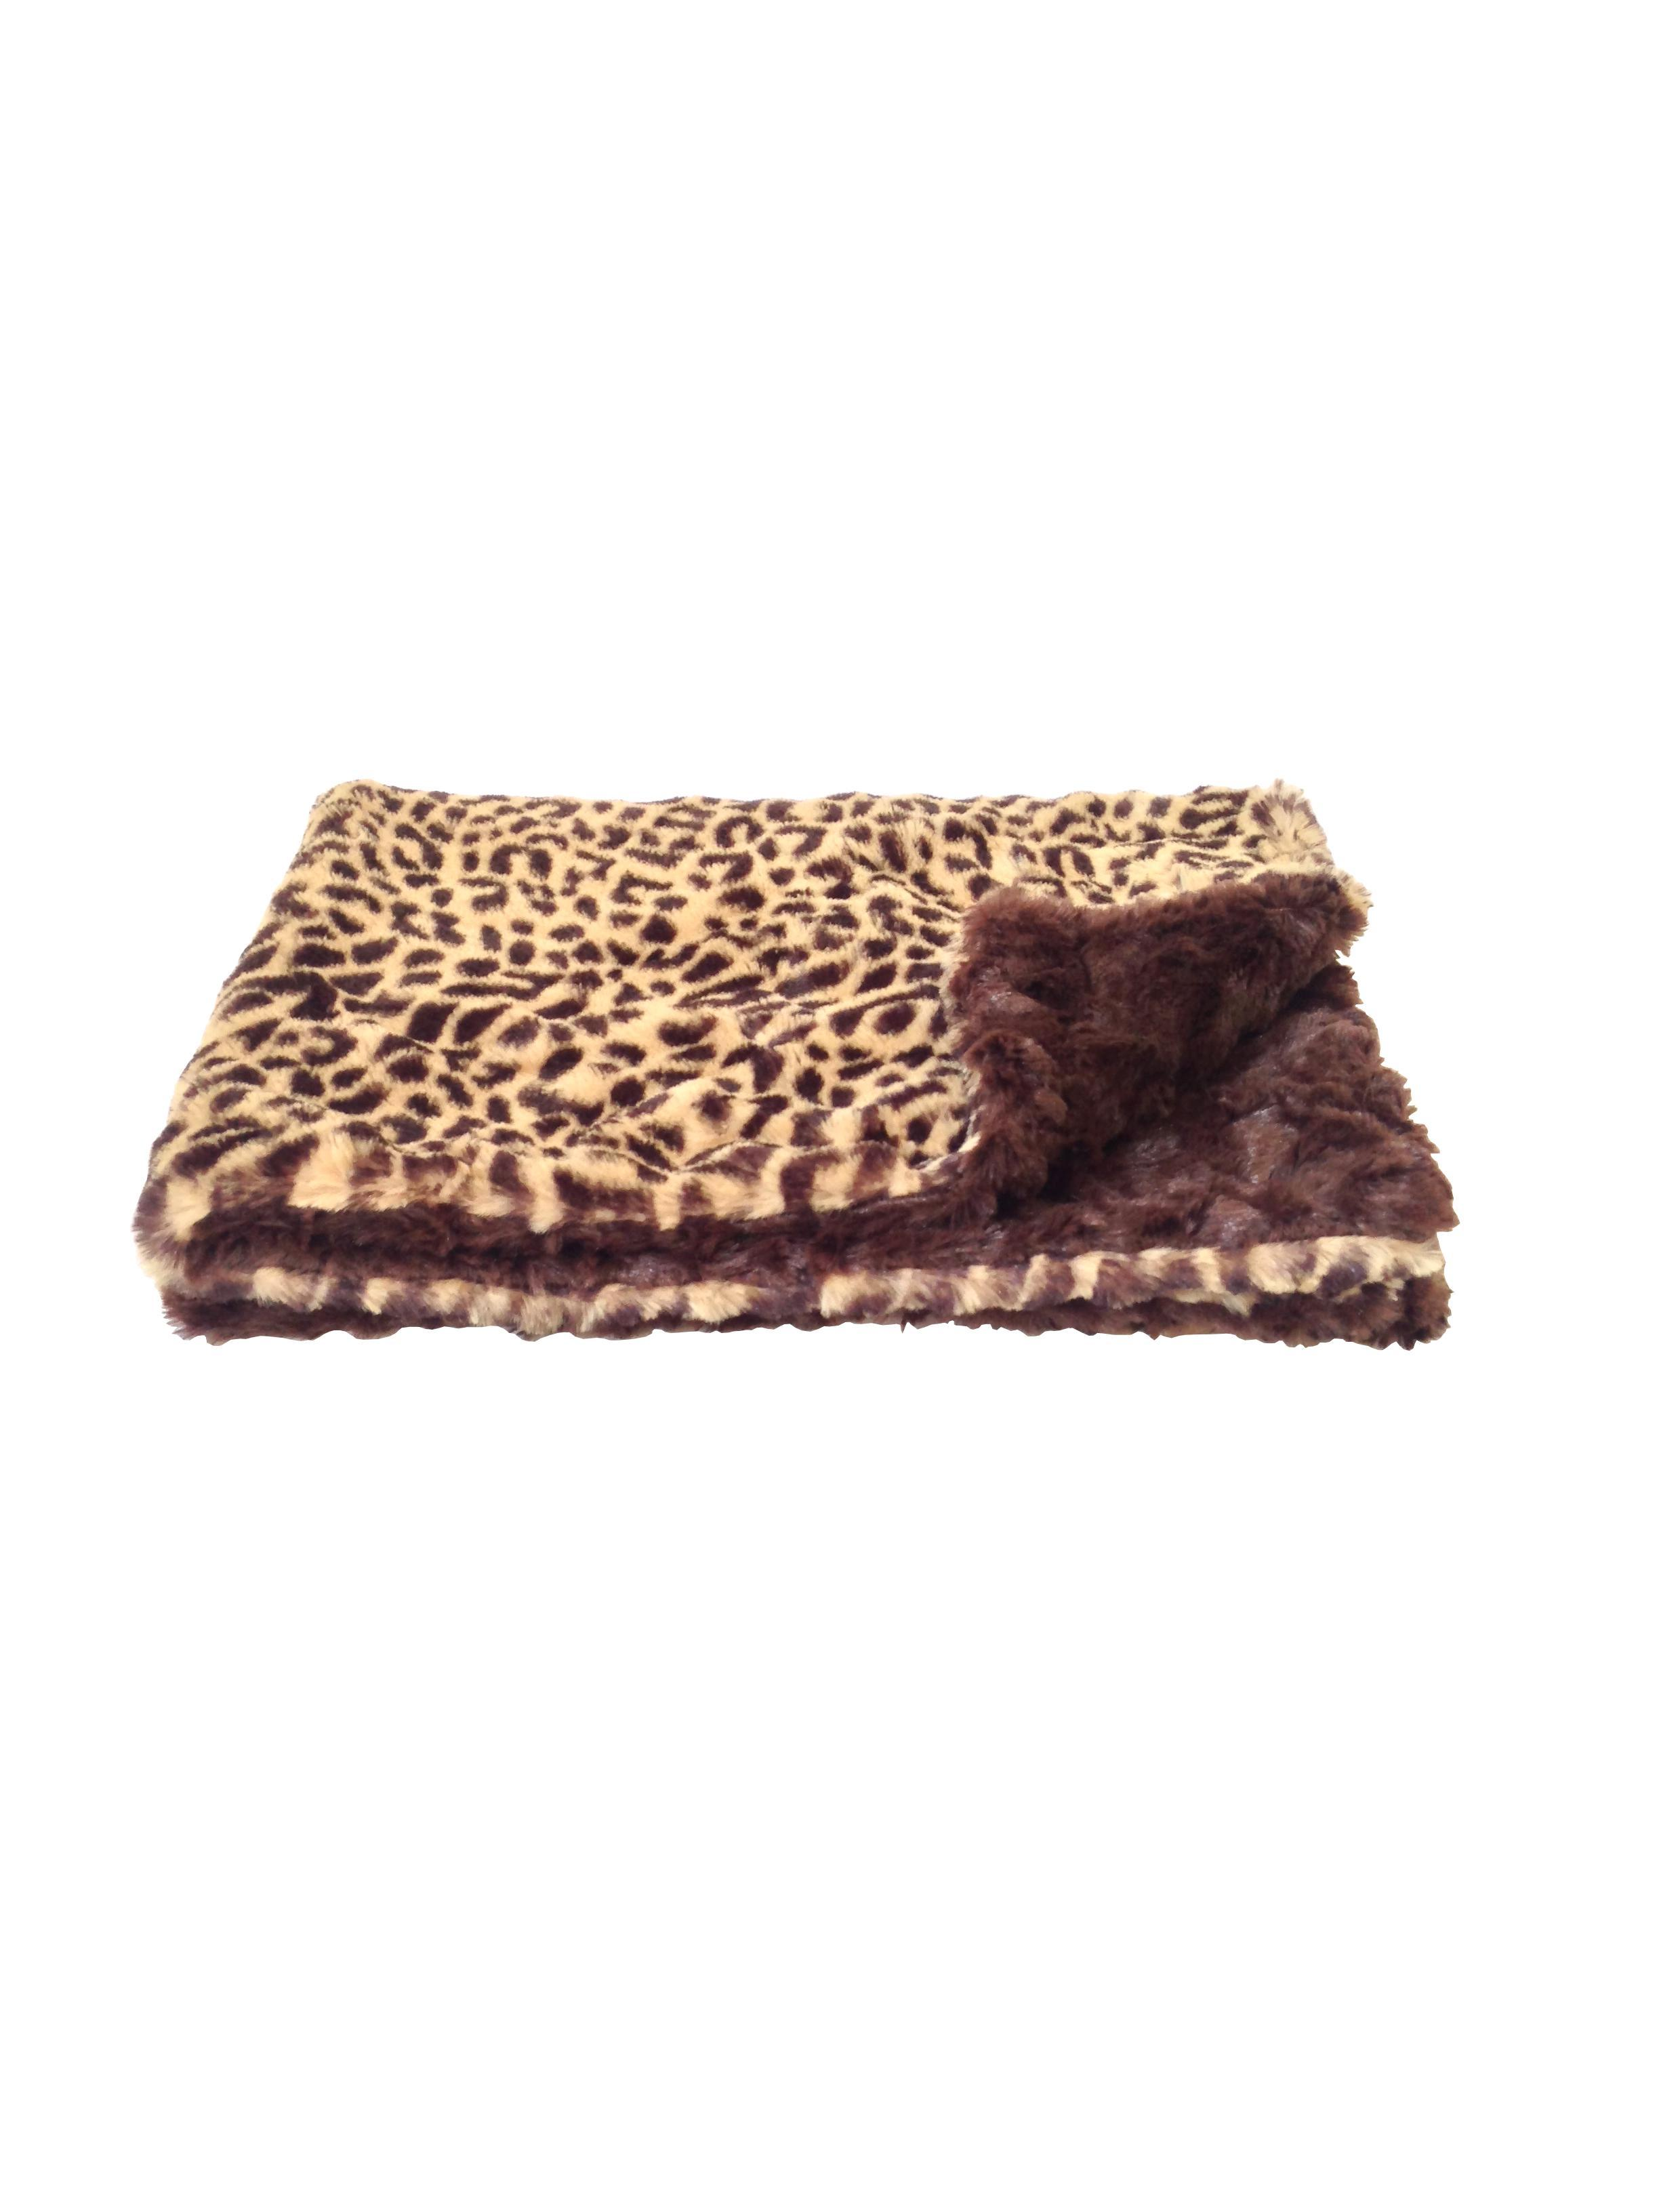 Faux Fur Dog Blanket by The Dog Squad - Cheetah